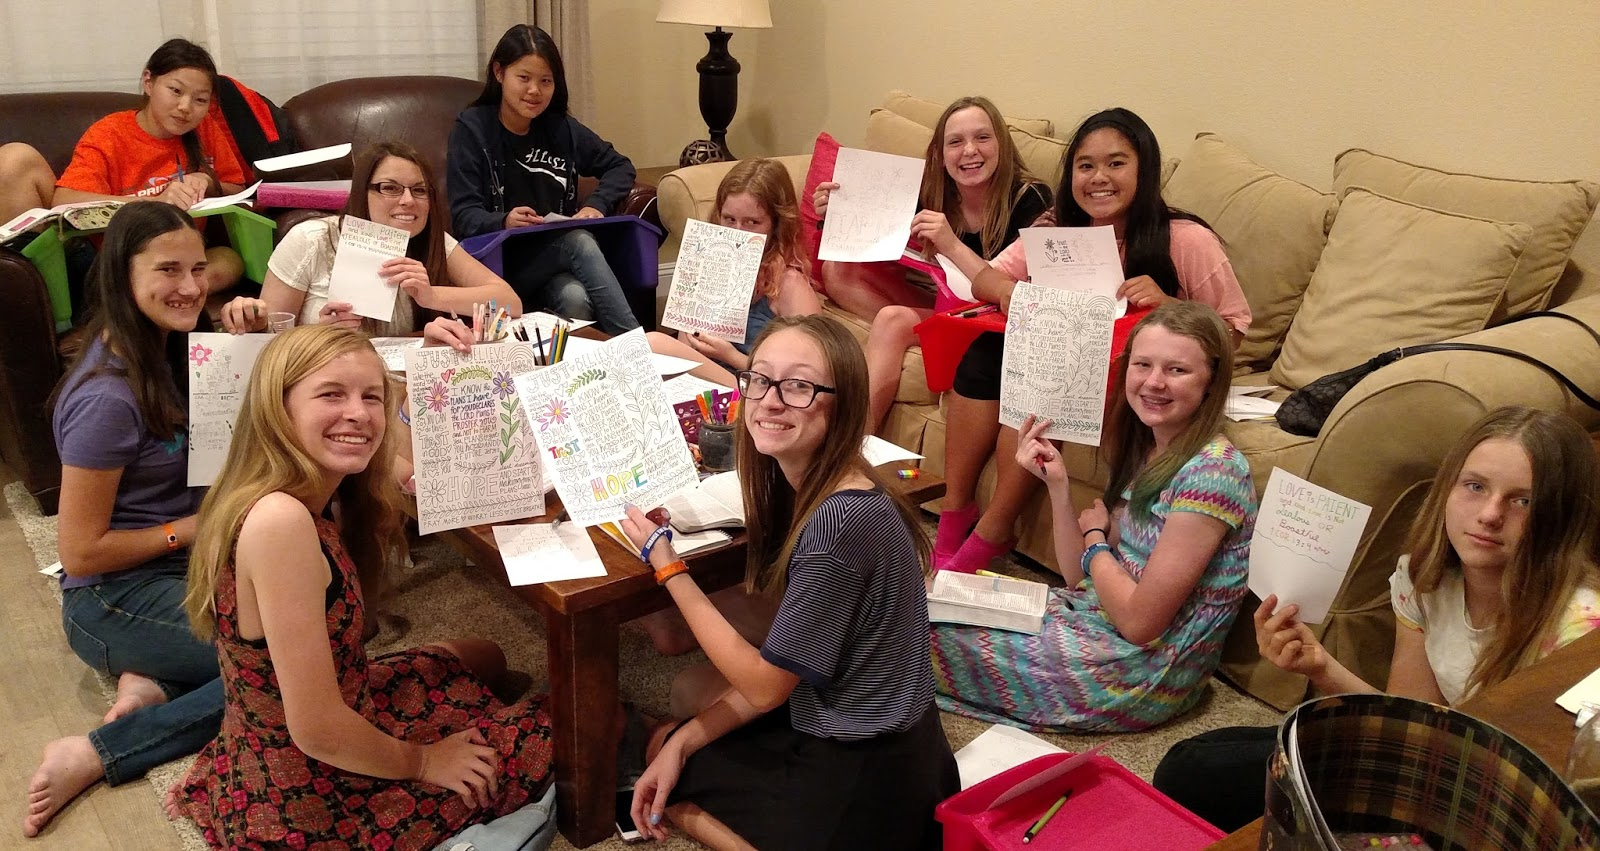 ENCHANTED INSPIRATIONS: FREE COLORING PAGE AND BIBLE ART ...